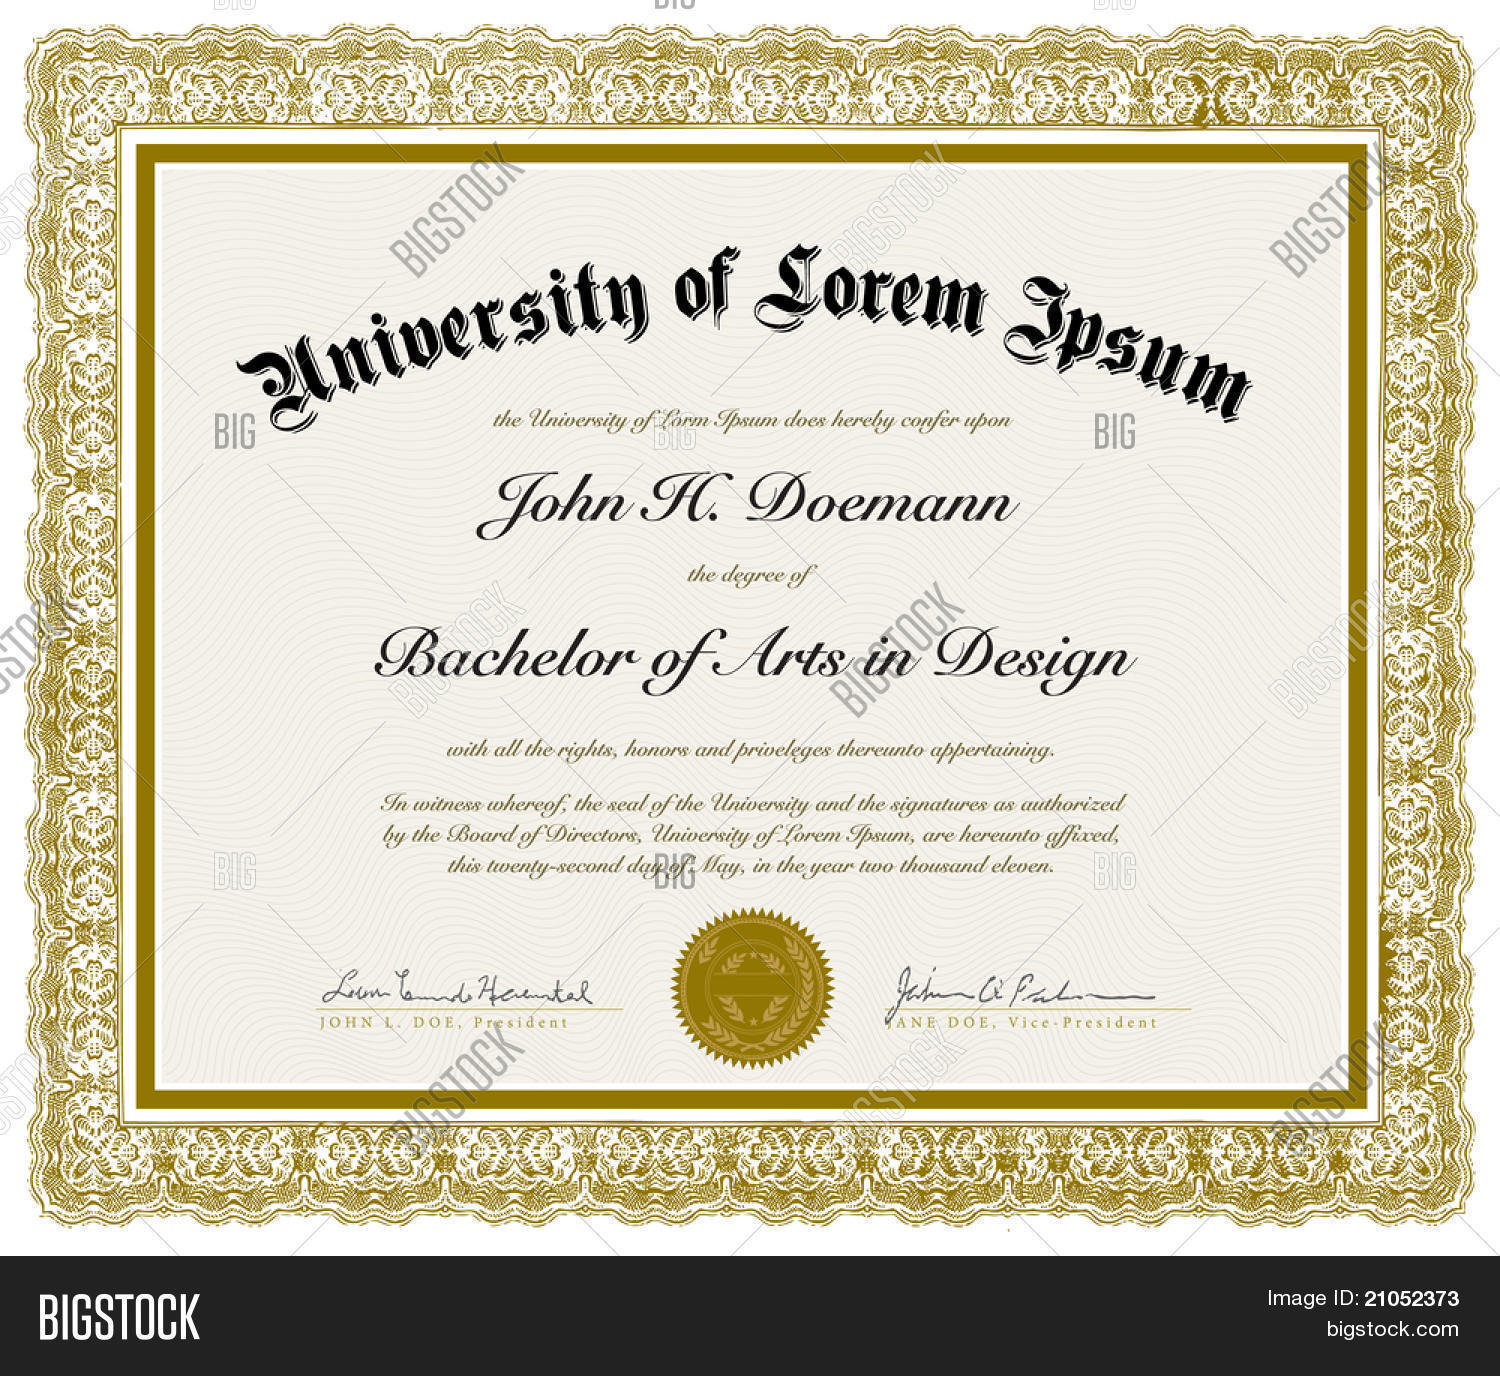 Vector Ornate Diploma With Border Easy To Edit Perfect For Diplomas Or Other